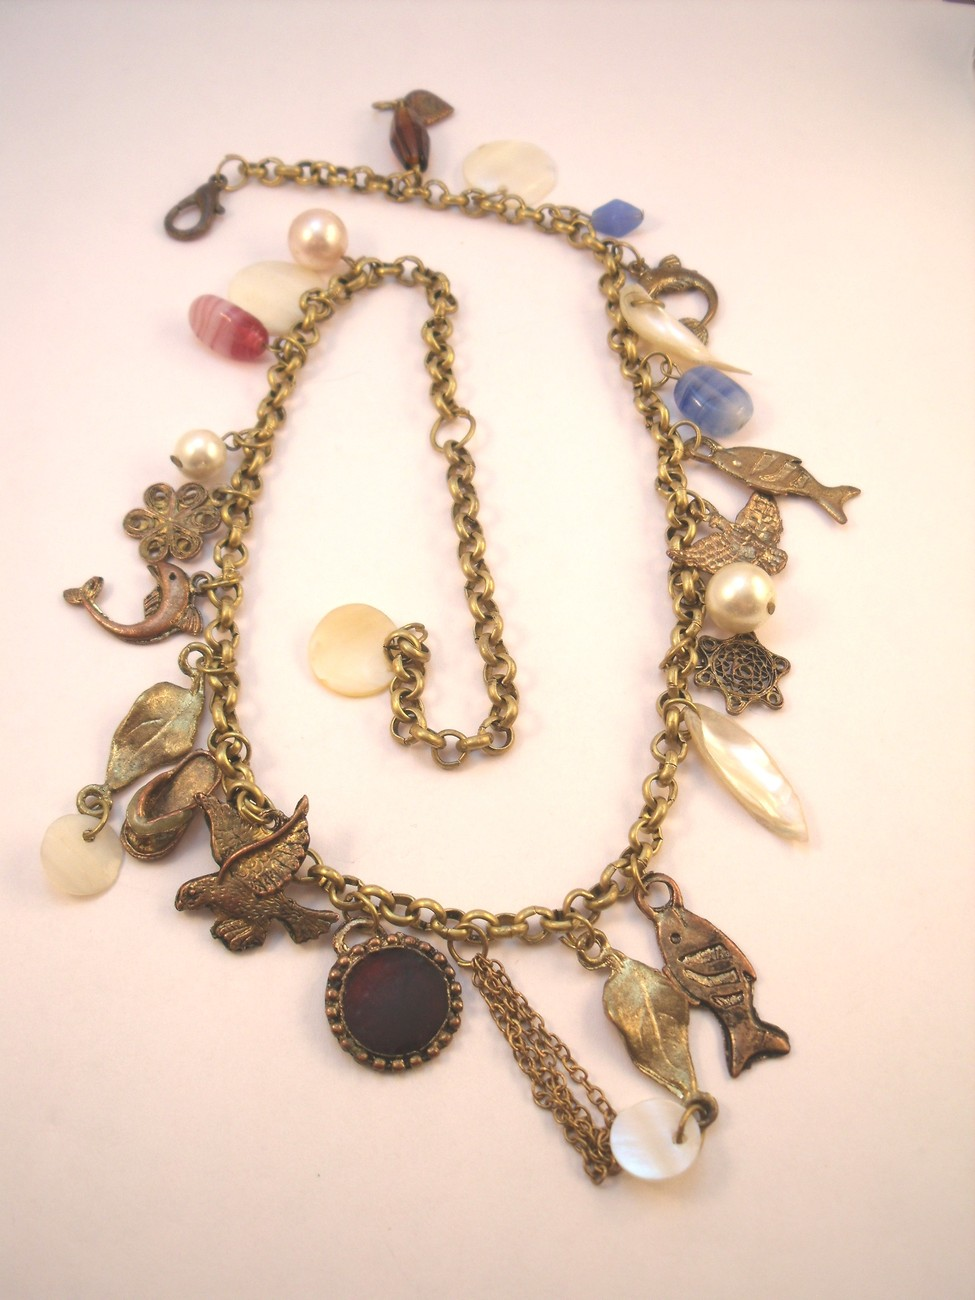 Fun funky charm necklace with lots of birds and fish